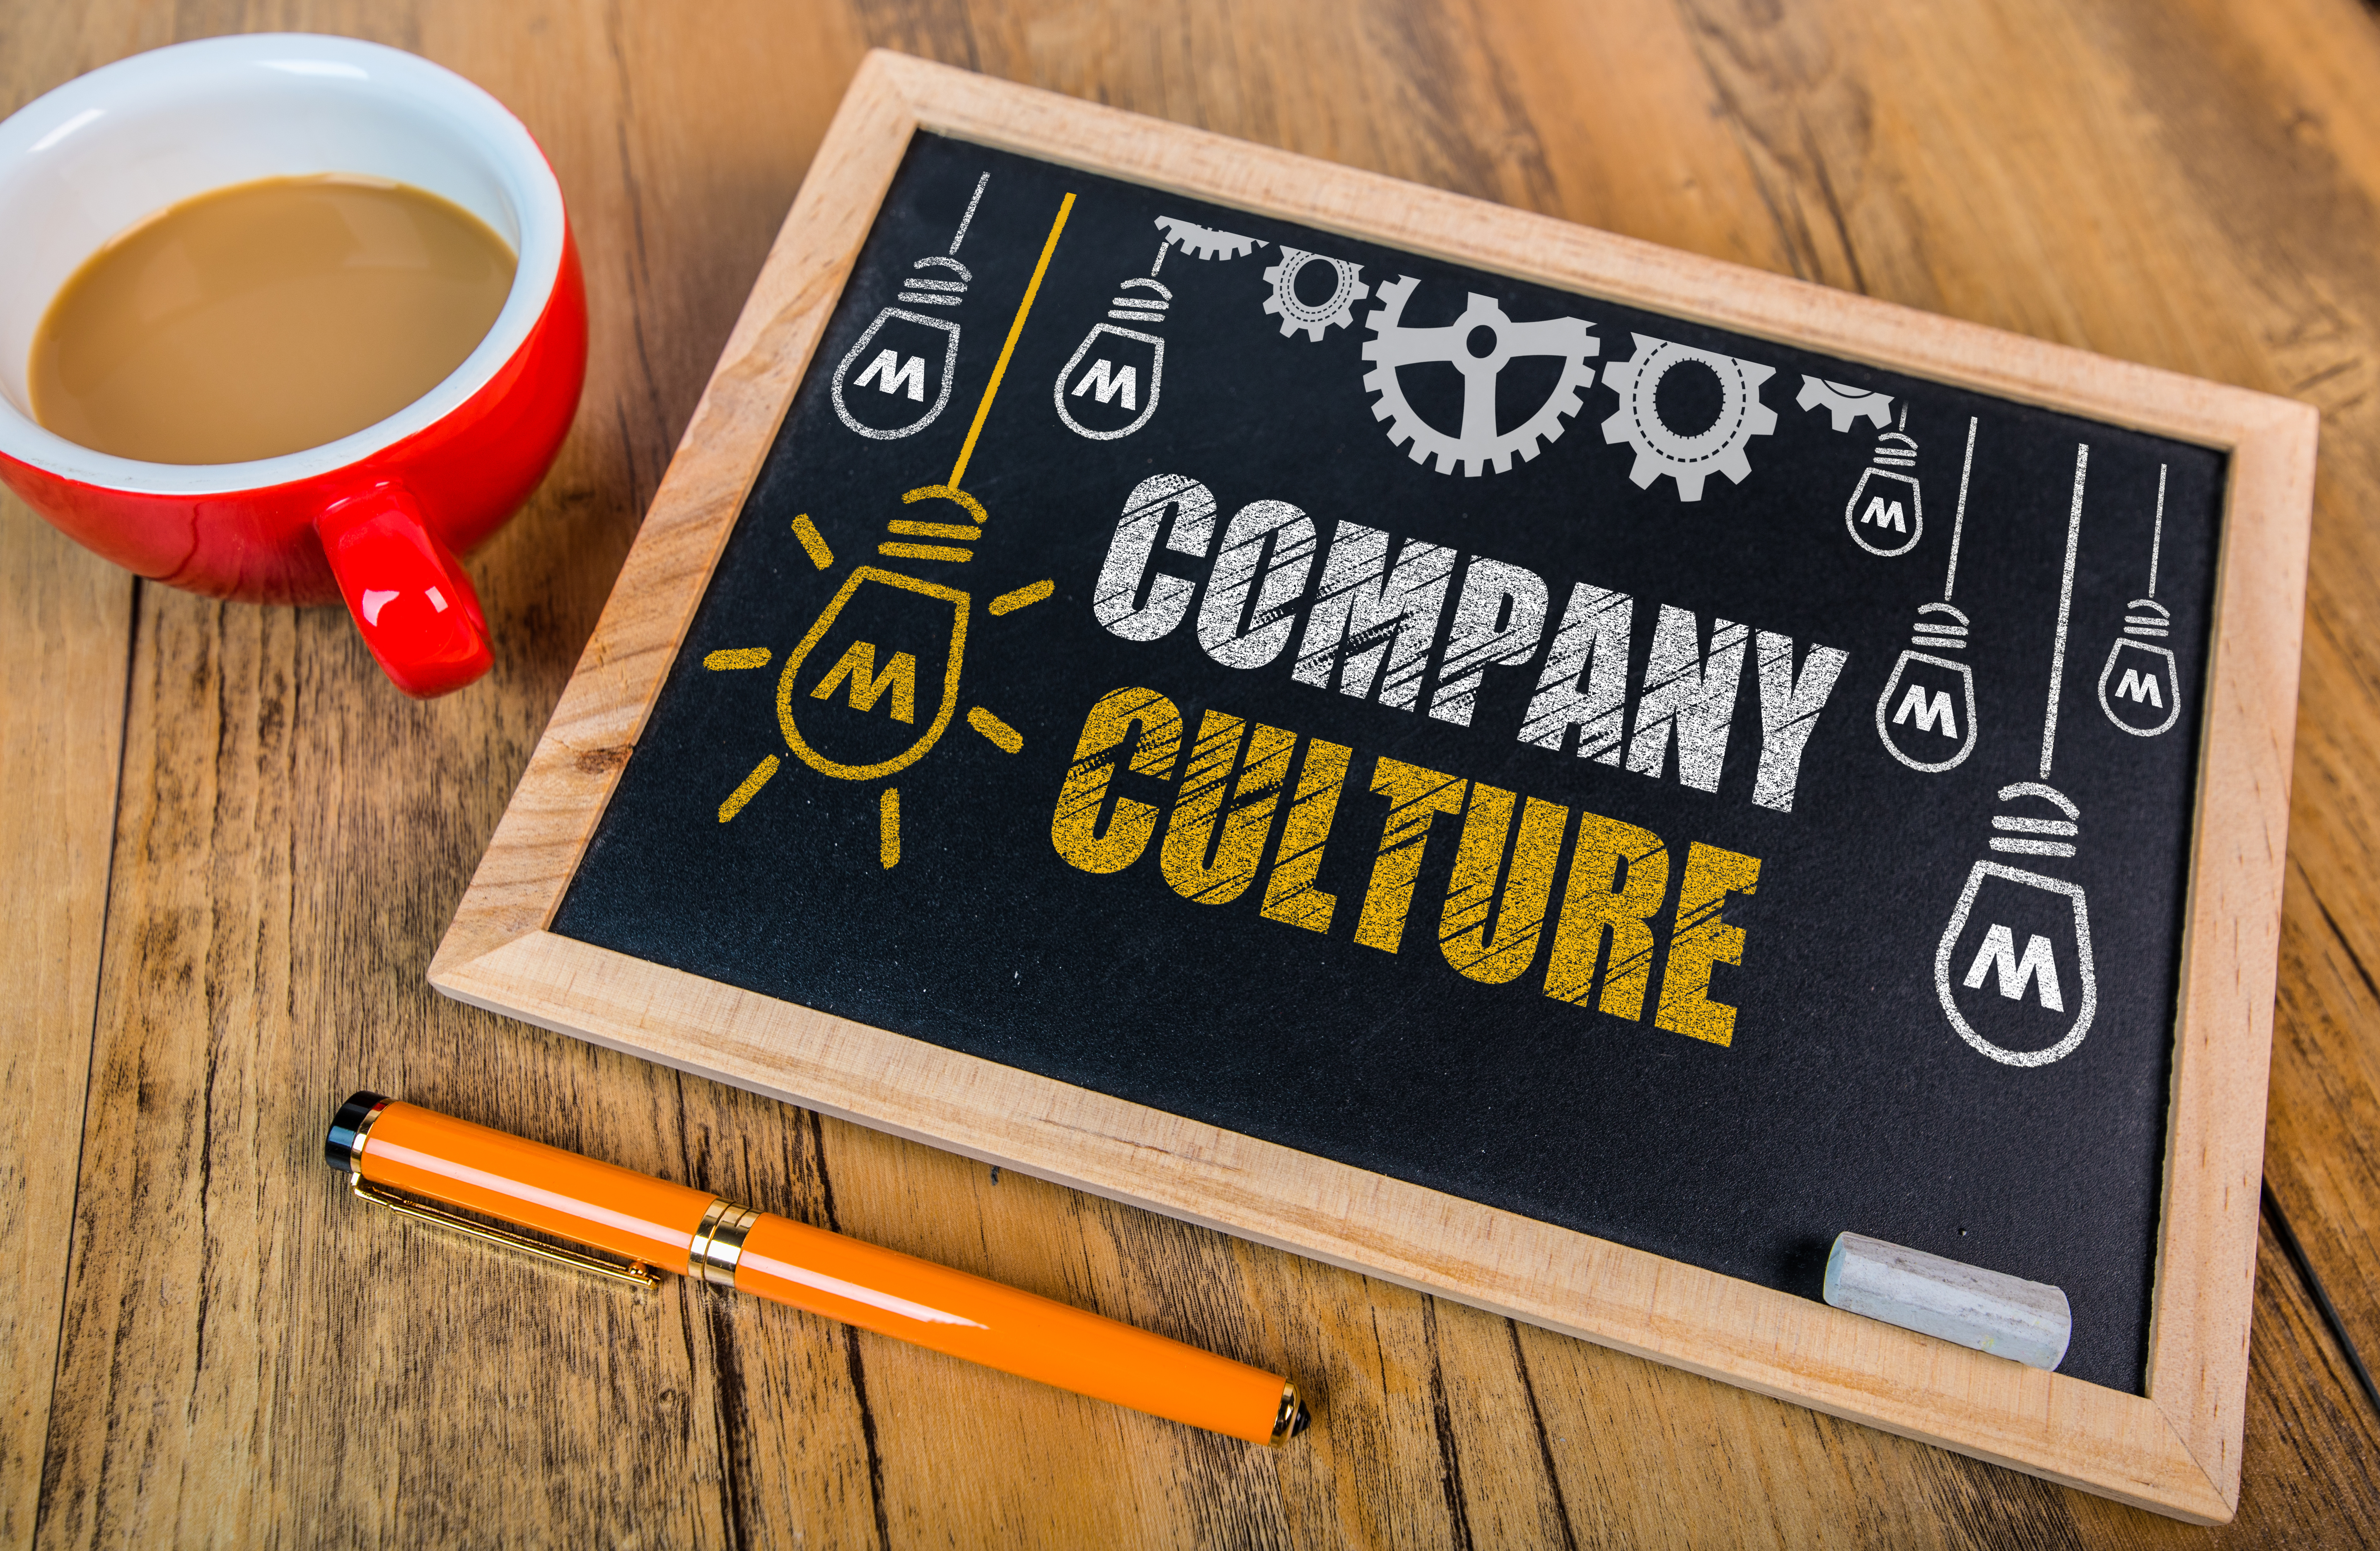 culture of innovation